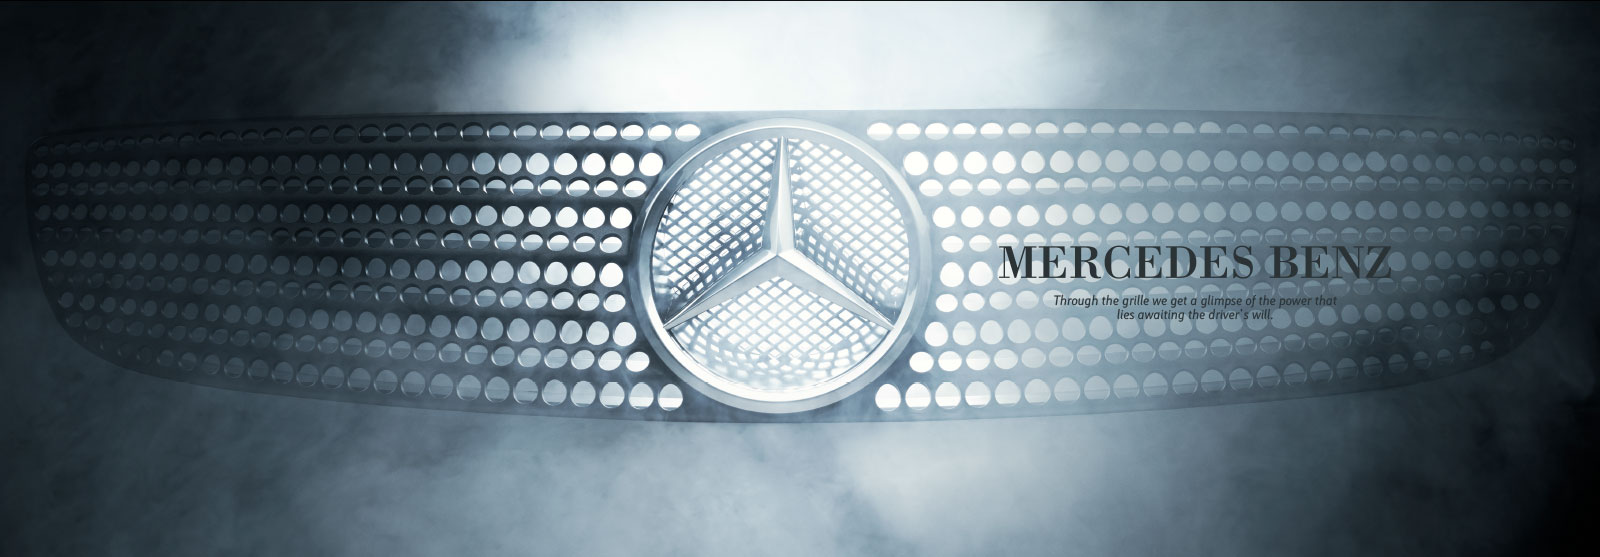 Editorial-Mercedes-Dream-final-4